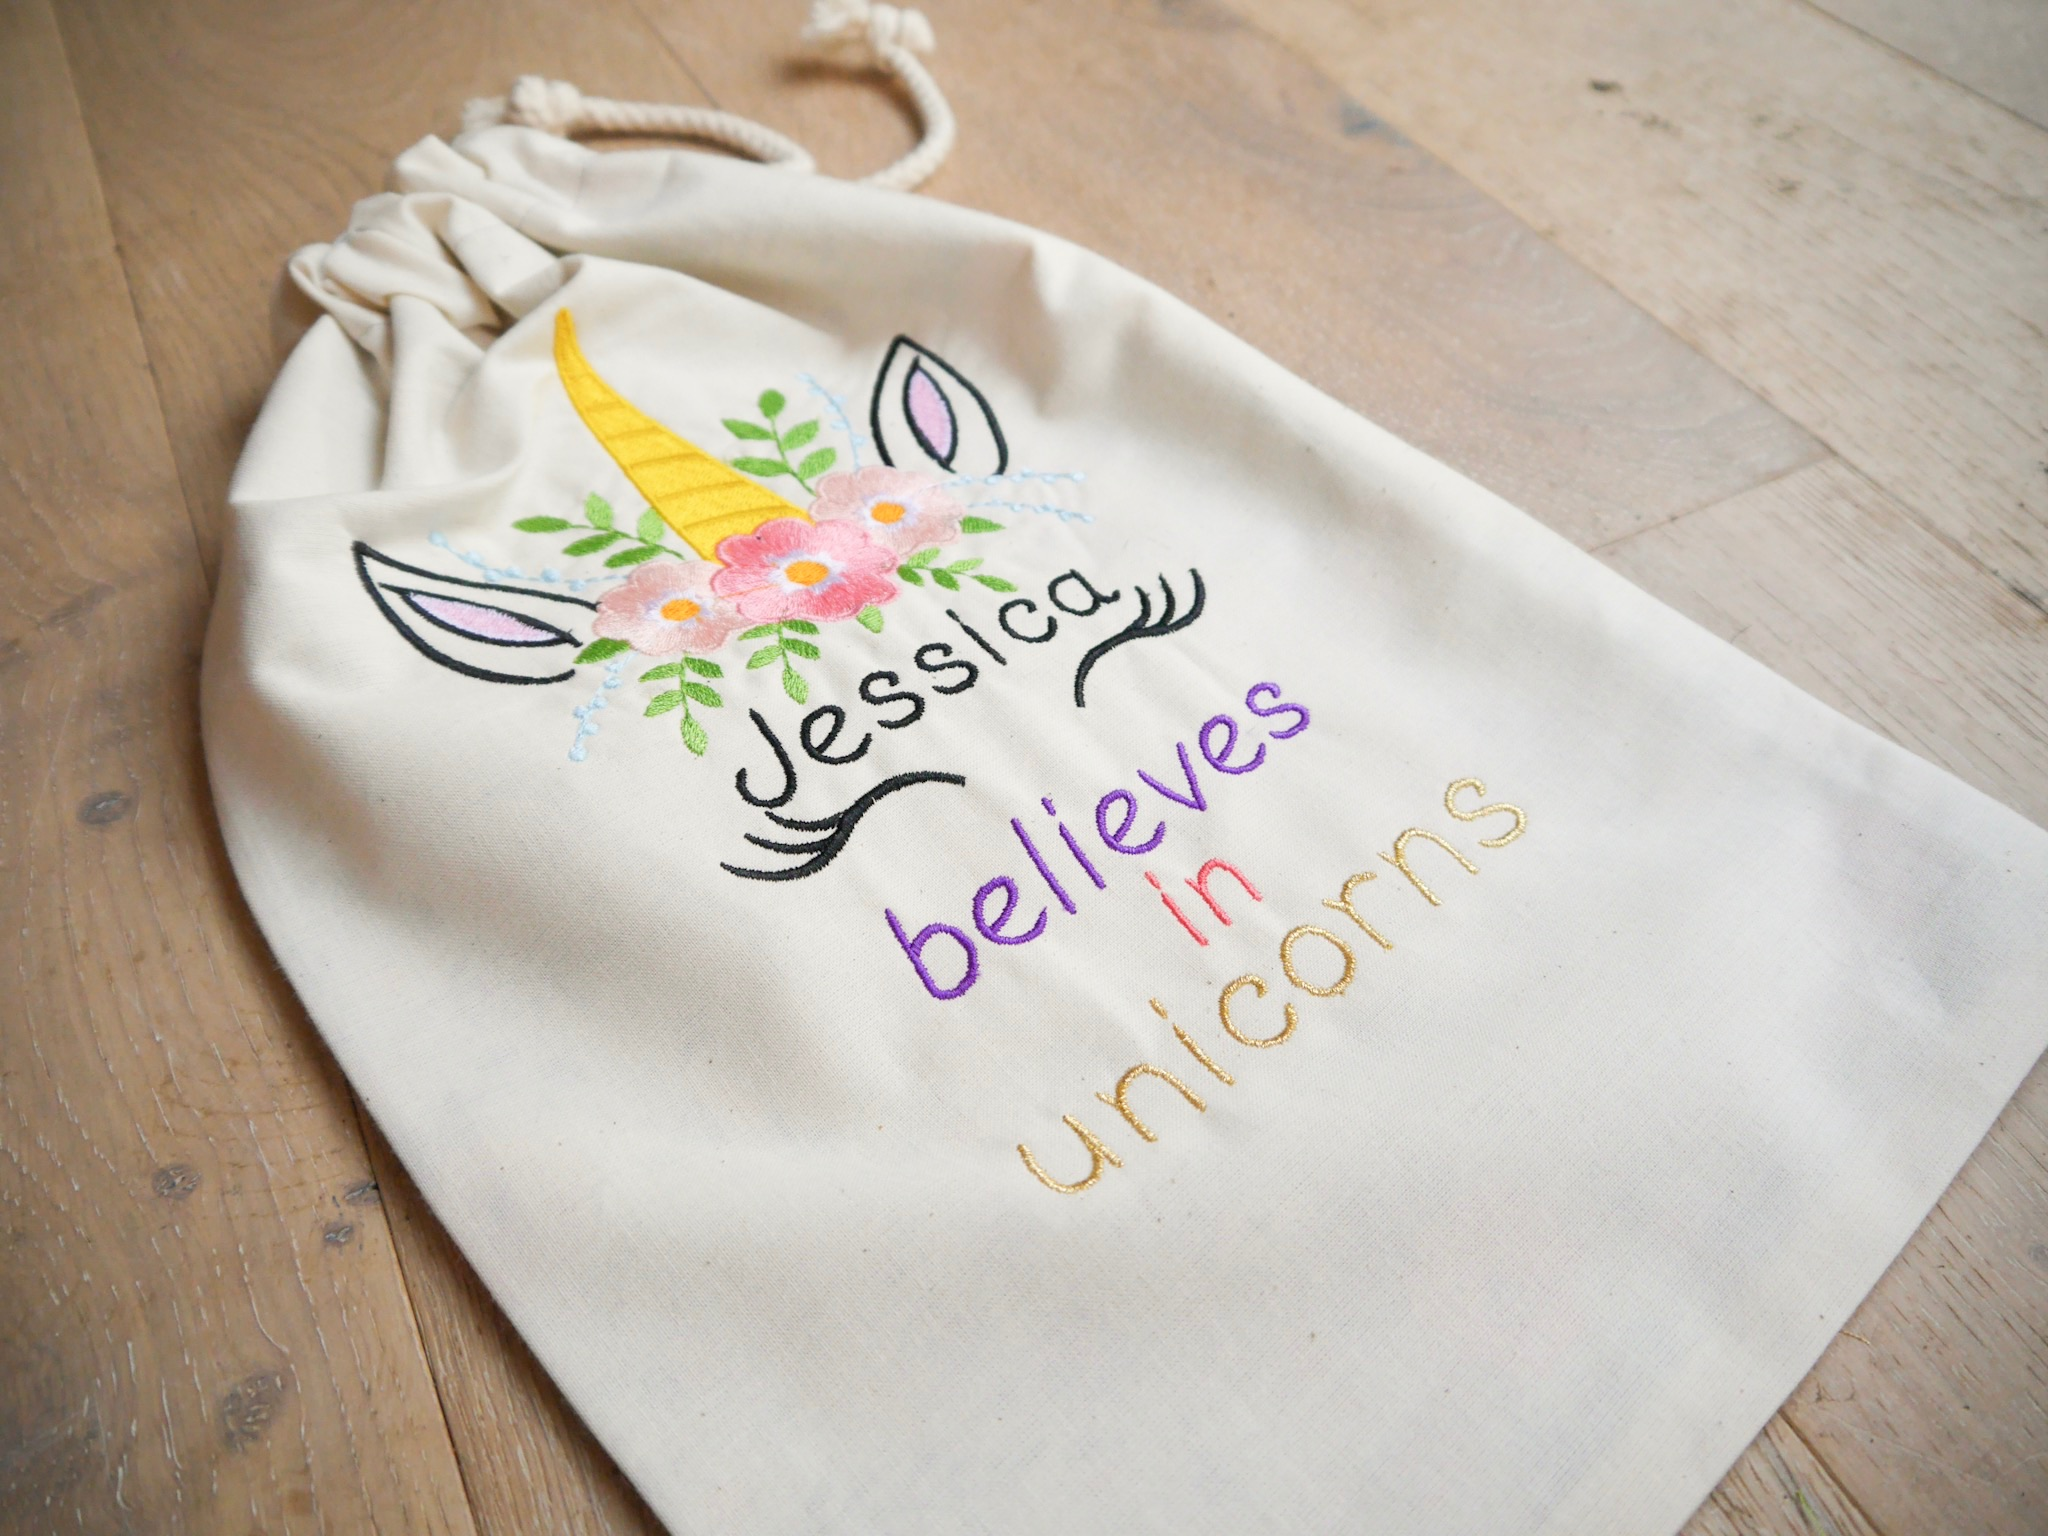 Whether… - that be one of our marvellously, empowering photoshoot packages we have available or one of the many cloth bags I design with the sole intention of promoting the 'use and reuse' idea. The gorgeous and sometimes personalised bags can be a fun way to teach our children (and ourselves) not to rely on plastic so much and they make fabulous gifts. Young and old will take pleasure in the emotive messages on the bags and it also helps sometimes if they have their names on them (less easy to lose…)